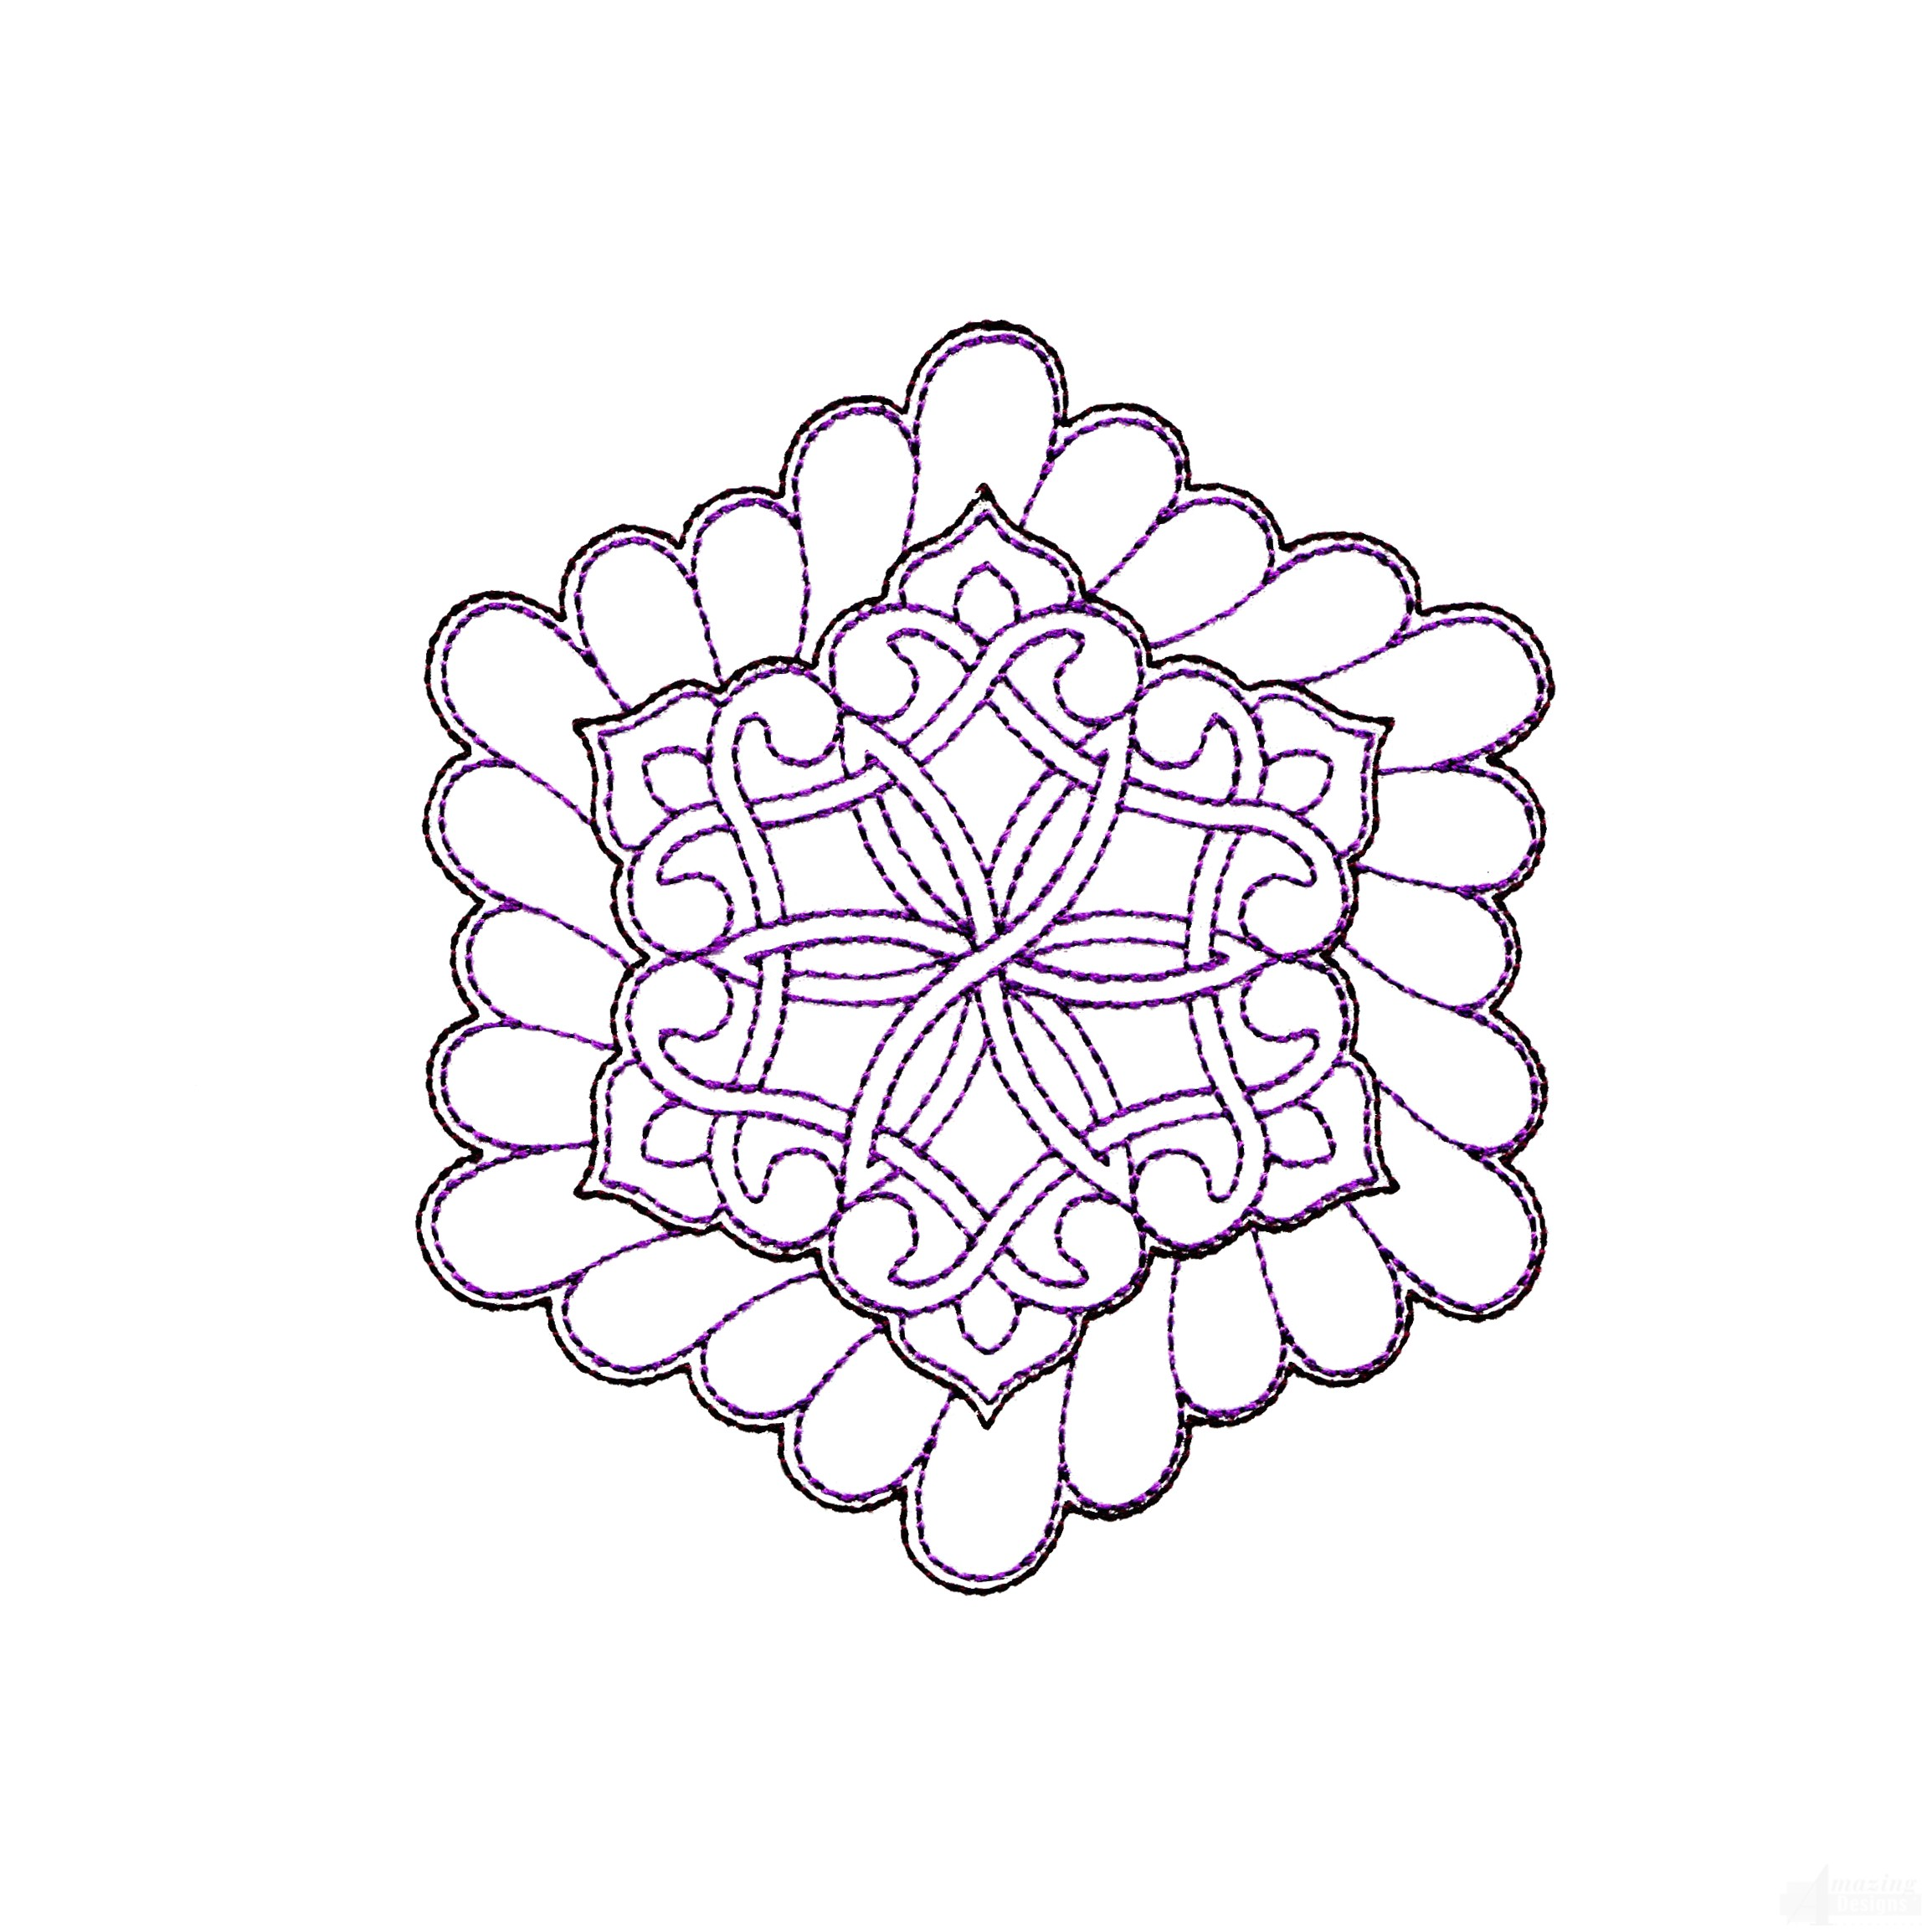 Rs124 Quilt Motif Embroidery Design